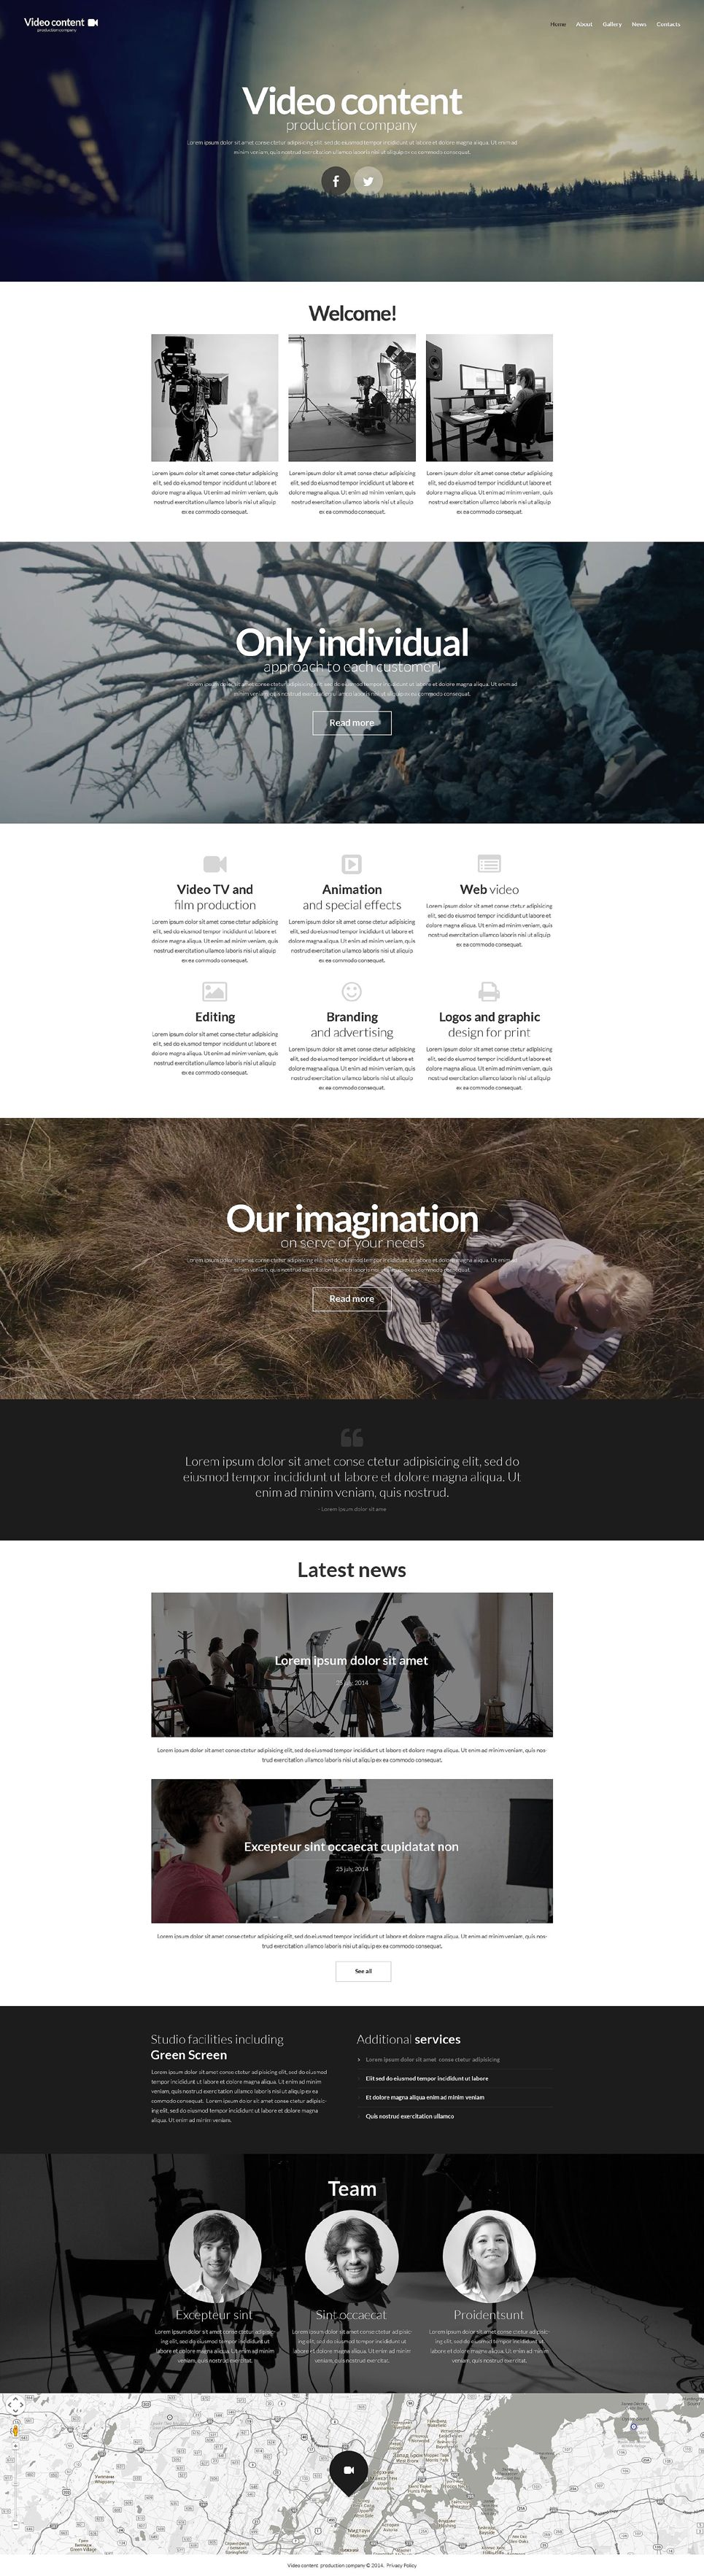 Video Production Website Template 52335 Corporate Website Design Web Design Studio Website Template